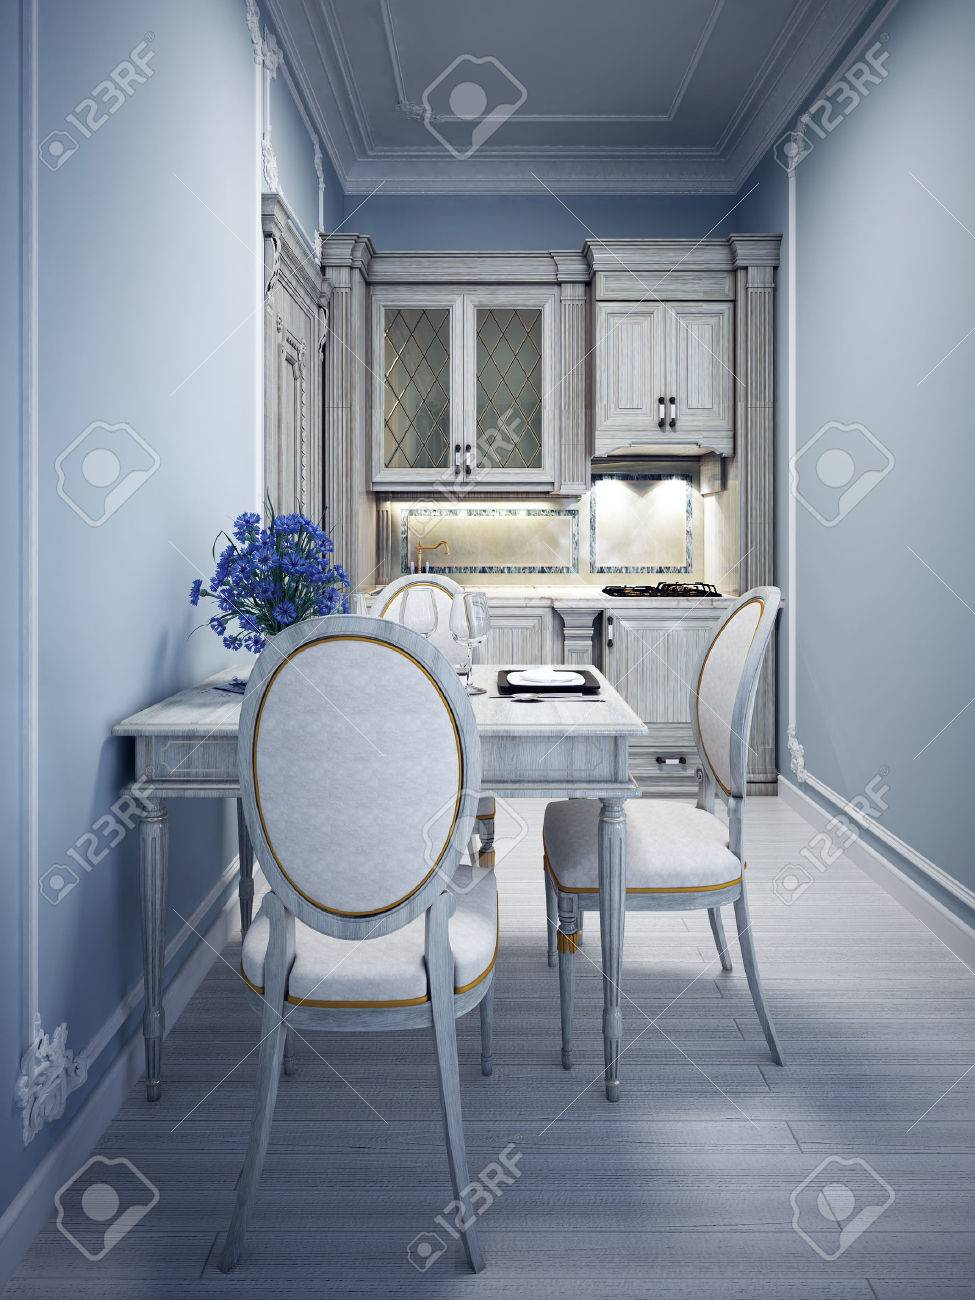 Blue Tiny Kitchen With Classic White Furniture. 3D Render Stock ...